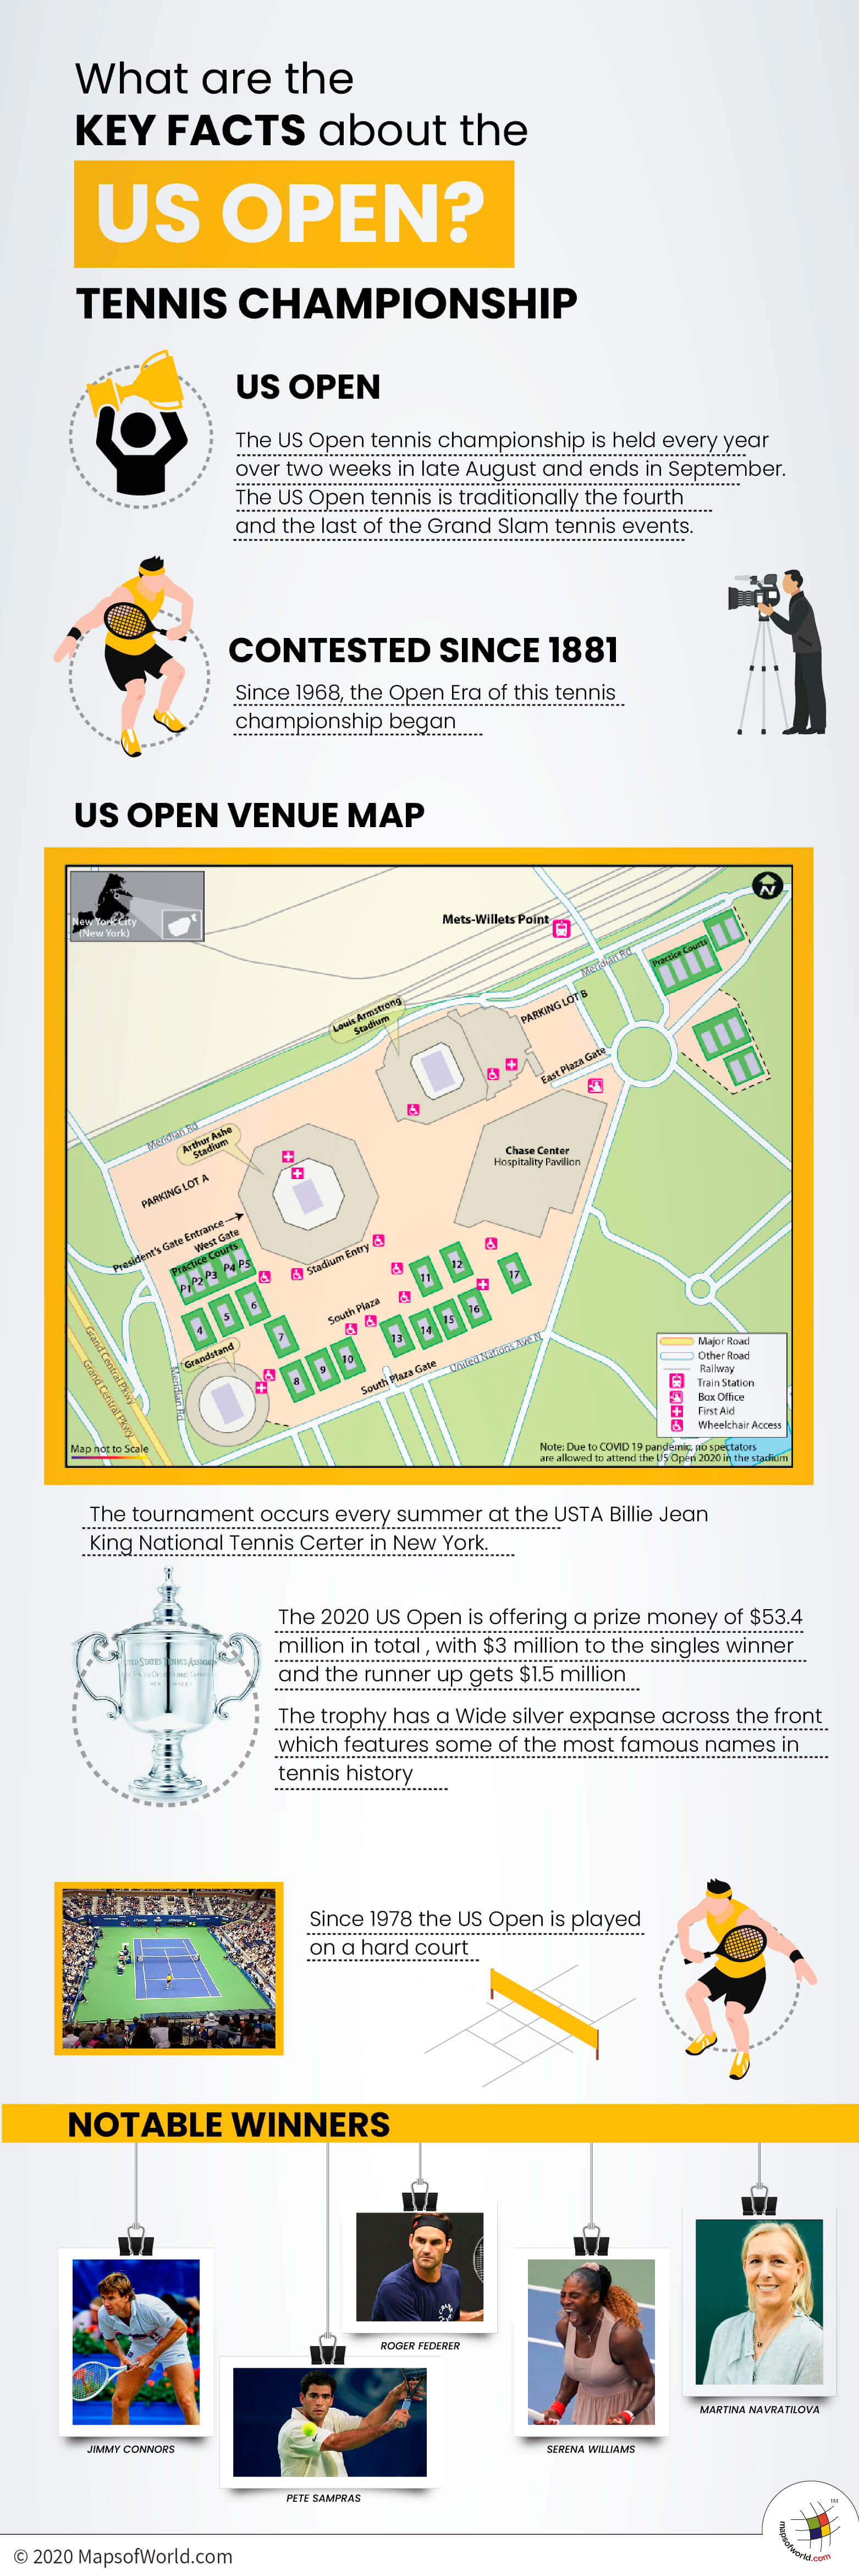 Infographic Showing Details About the US Open Tennis Championship